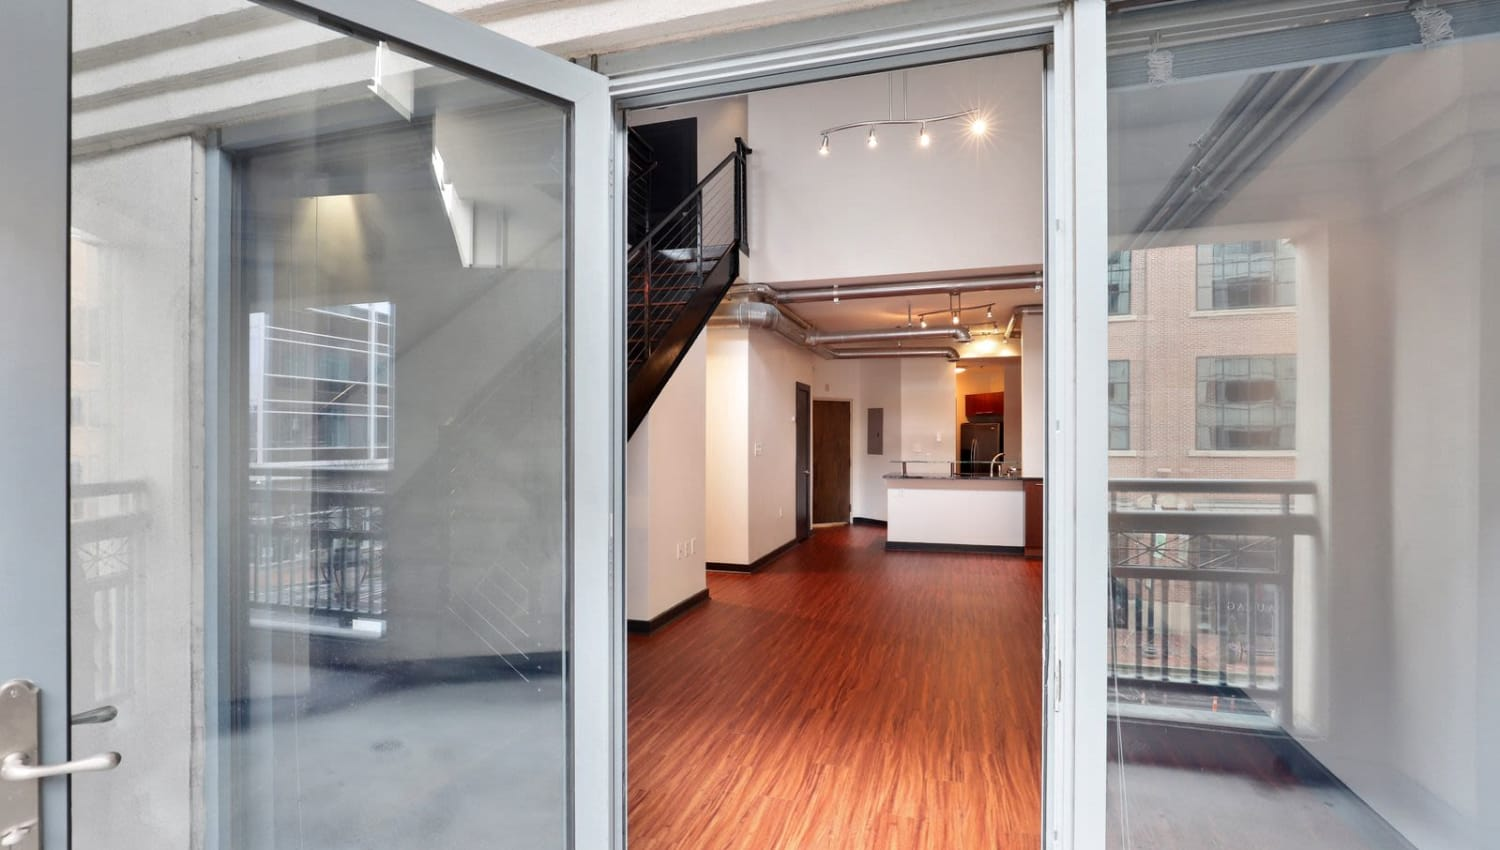 Living room with hardwood flooring and patio access at 17th Street Lofts in Atlanta, Georgia